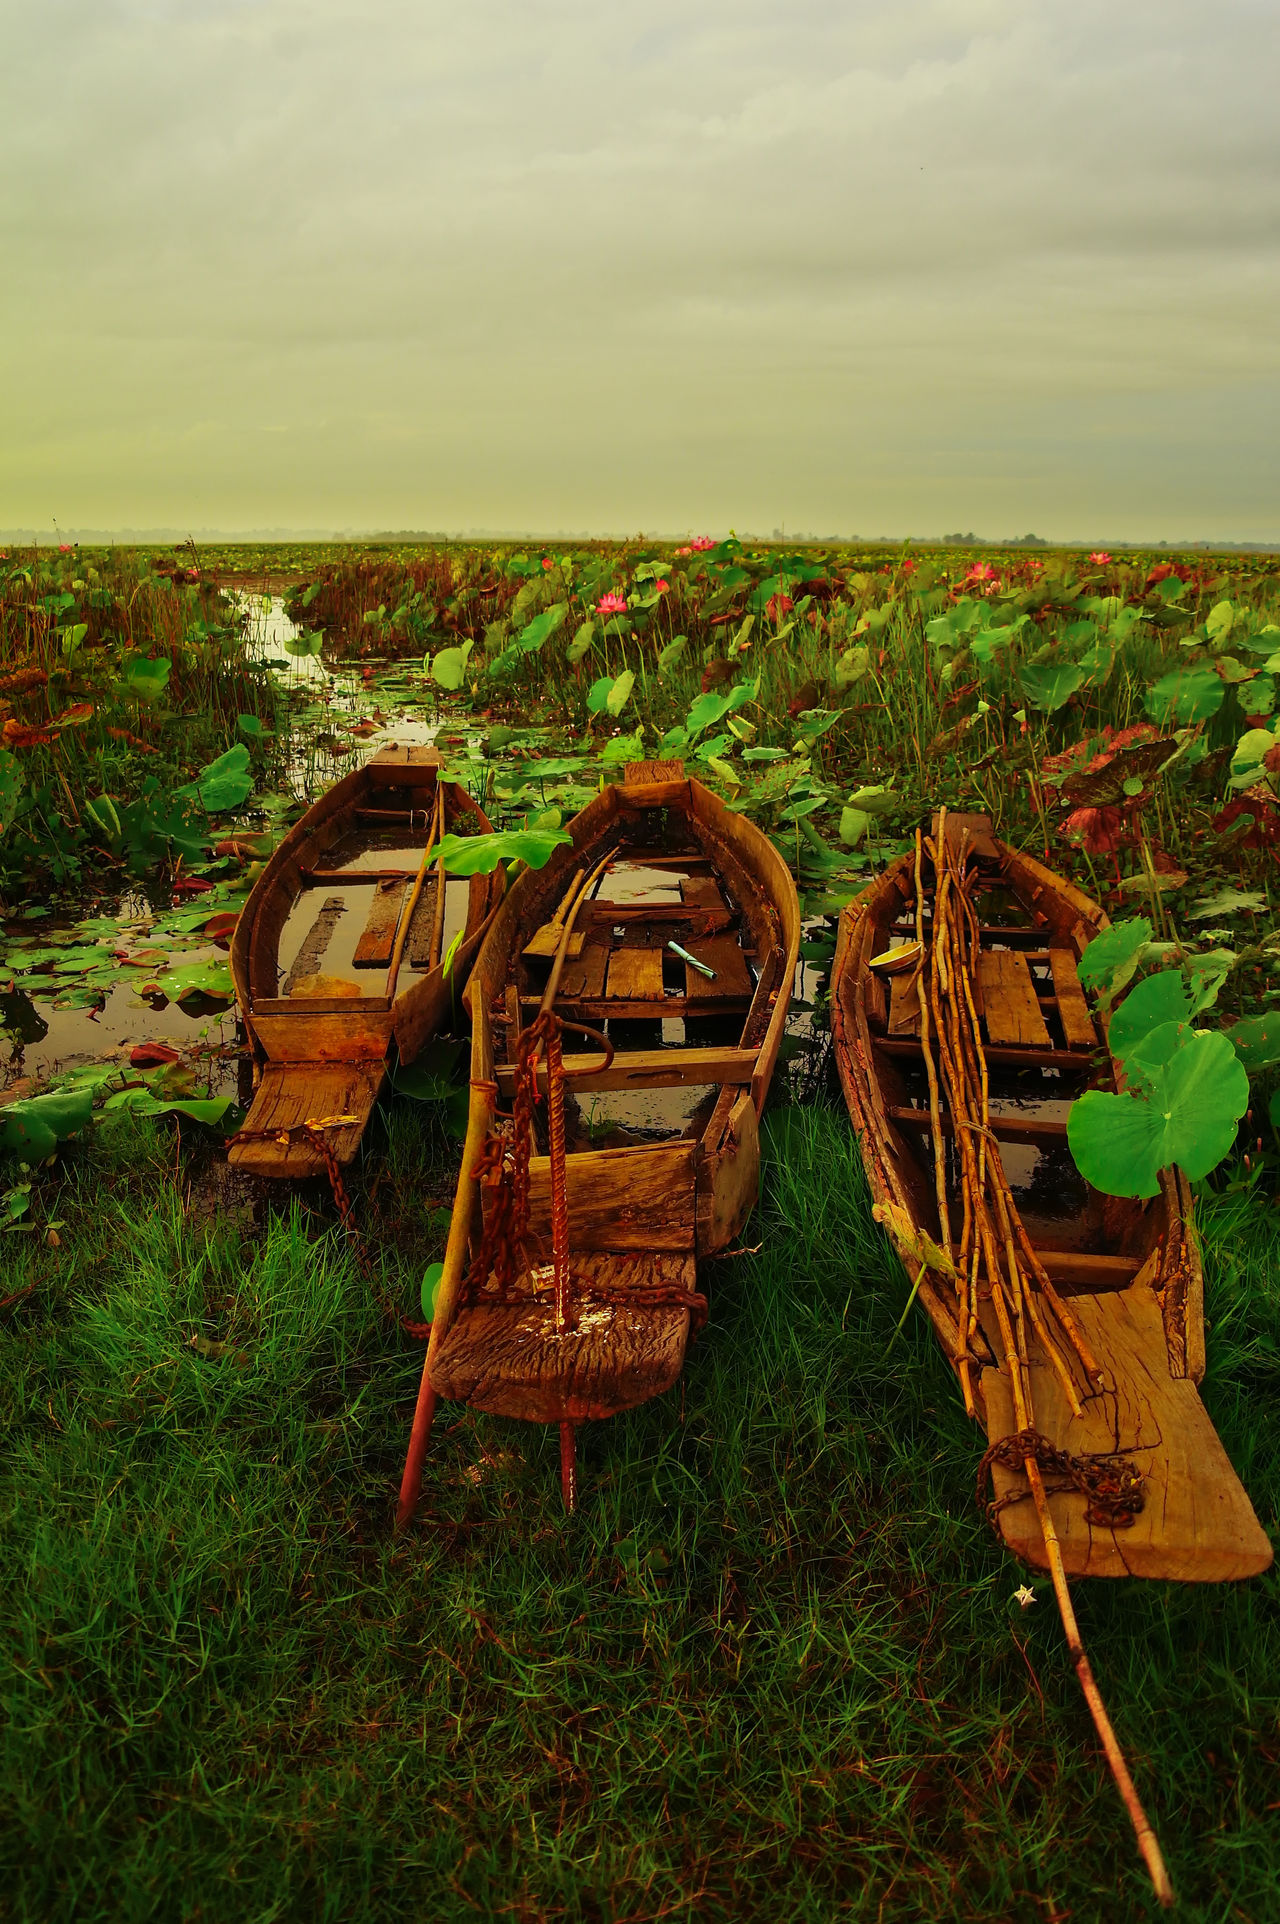 Abandoned Asian Culture Beauty In Nature Boat Boat Dock Day Field Grass Lake Landscape Livelyhood Lotus Flower Lotus Leaf Love Nature No People Obsolete Outdoors Scenics Sky Tranquil Scene Tranquility Tropical